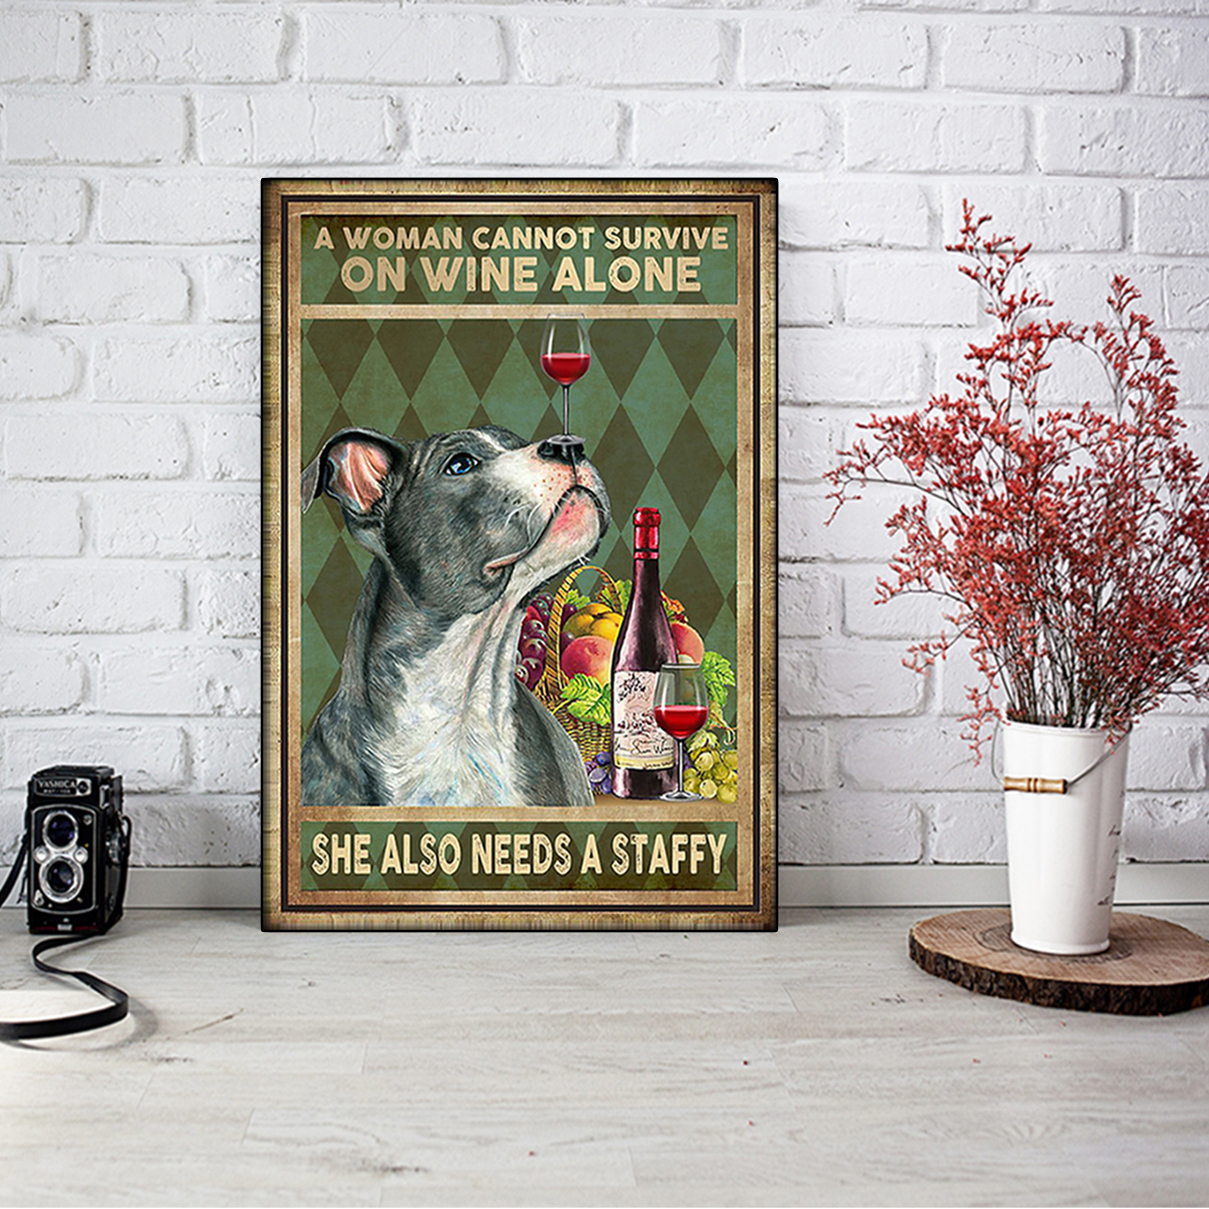 A woman cannot survive on wine alone she also needs a staffy poster A2